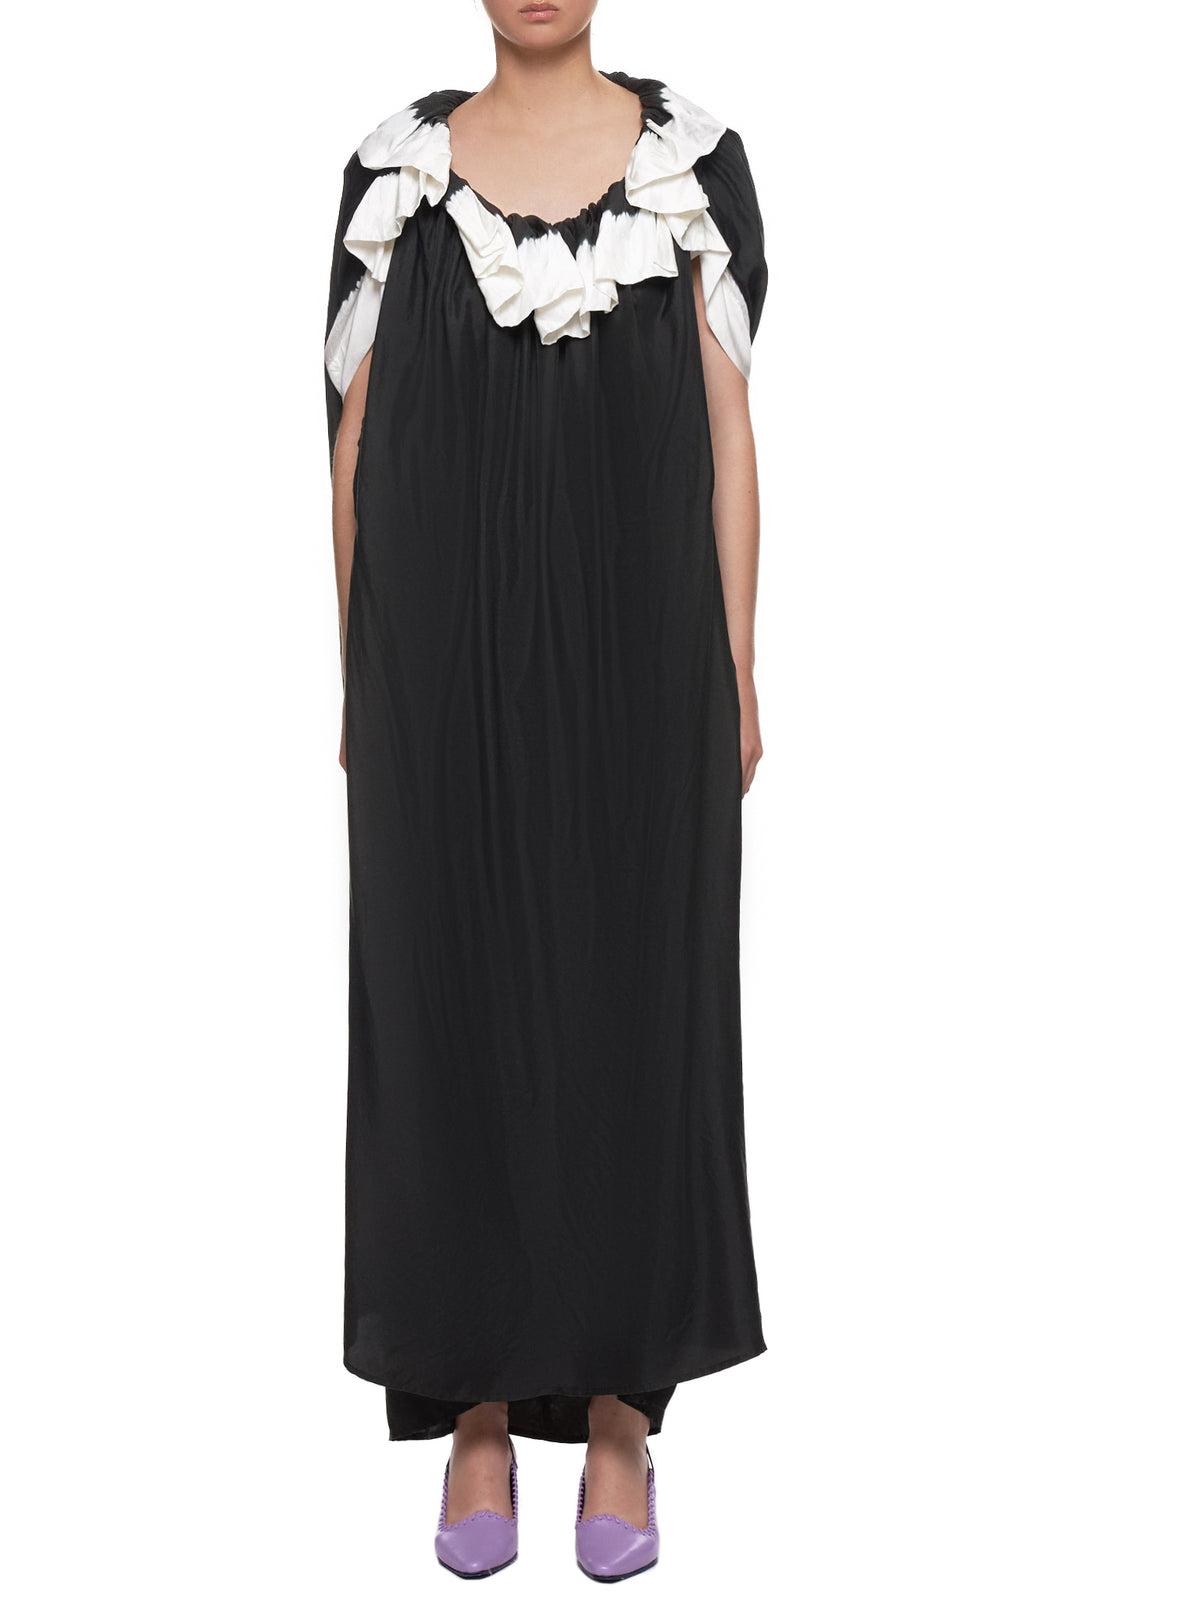 Bernhard Willhelm Dress - Hlorenzo Front